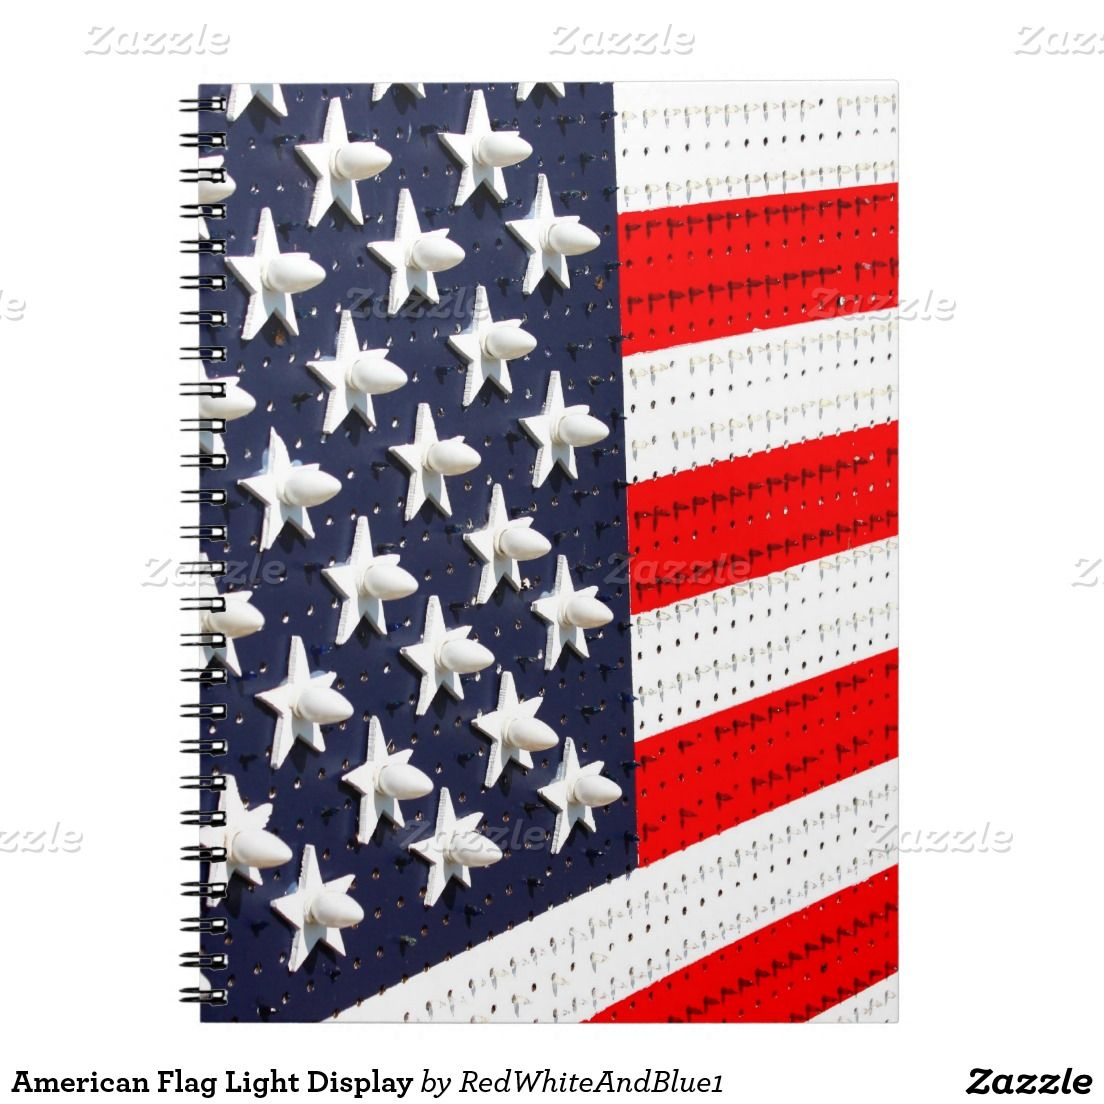 #American Flag Light Display Notebook by #RedWhiteAndBlue1 #gravityx9 #Zazzle